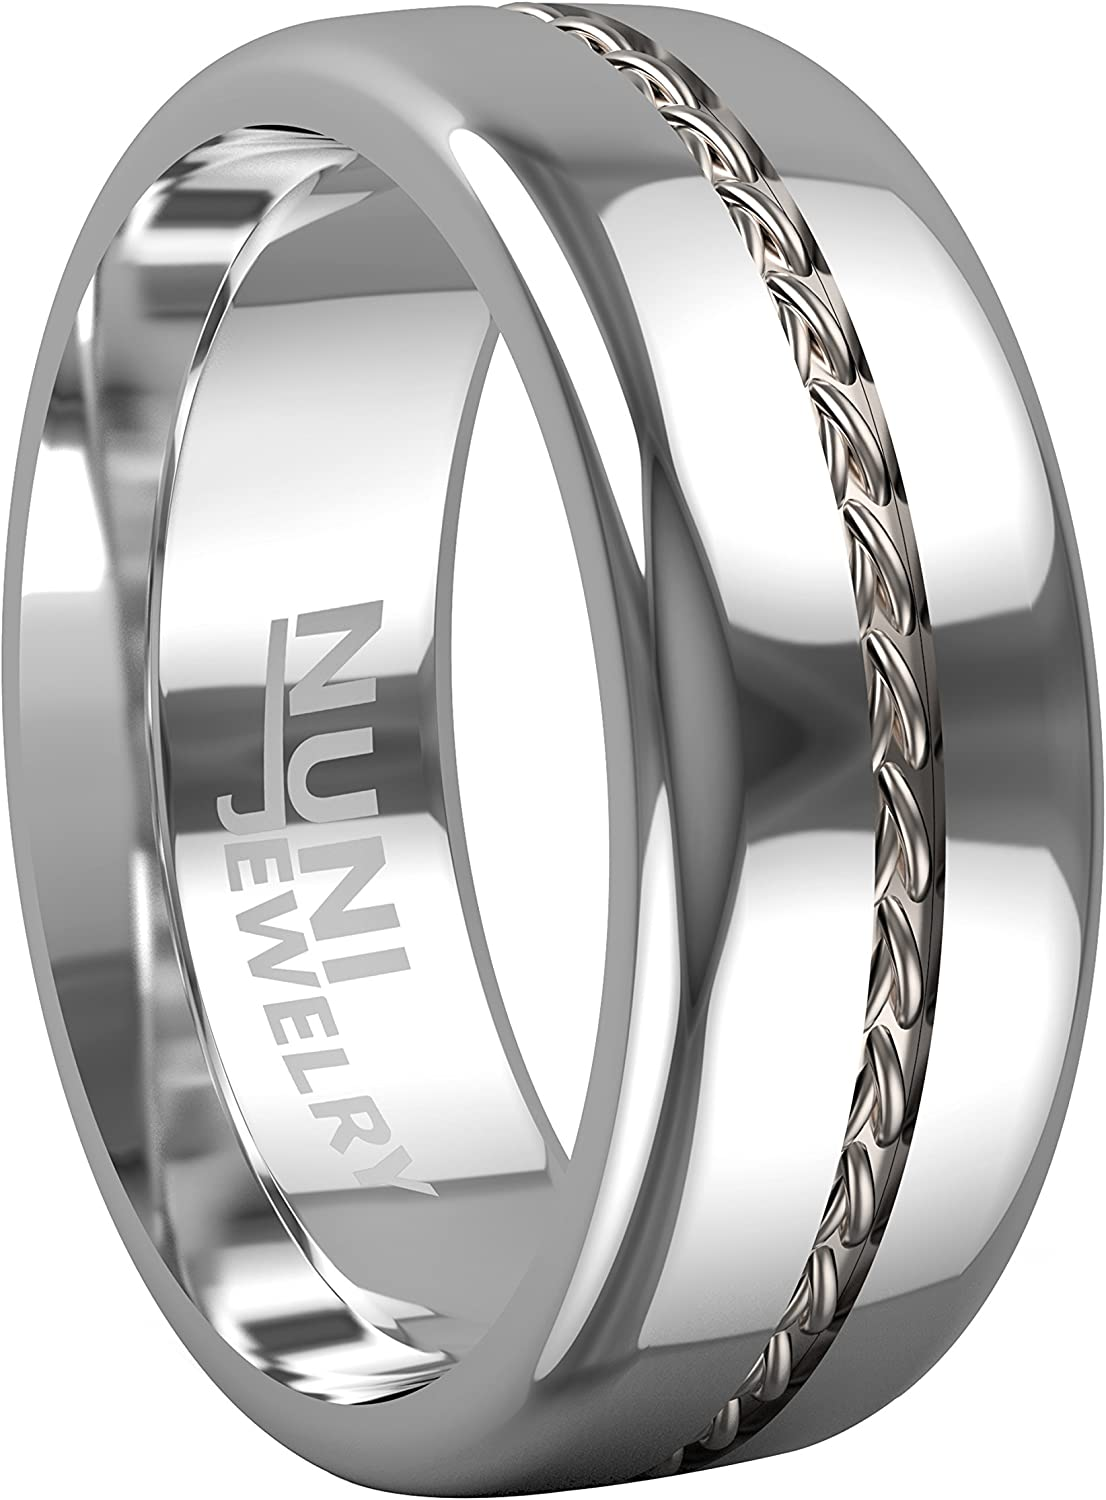 Nuni Today's only Jewelry Tungsten Ring Max 61% OFF Elegant Wedding with Silver Band Cabl